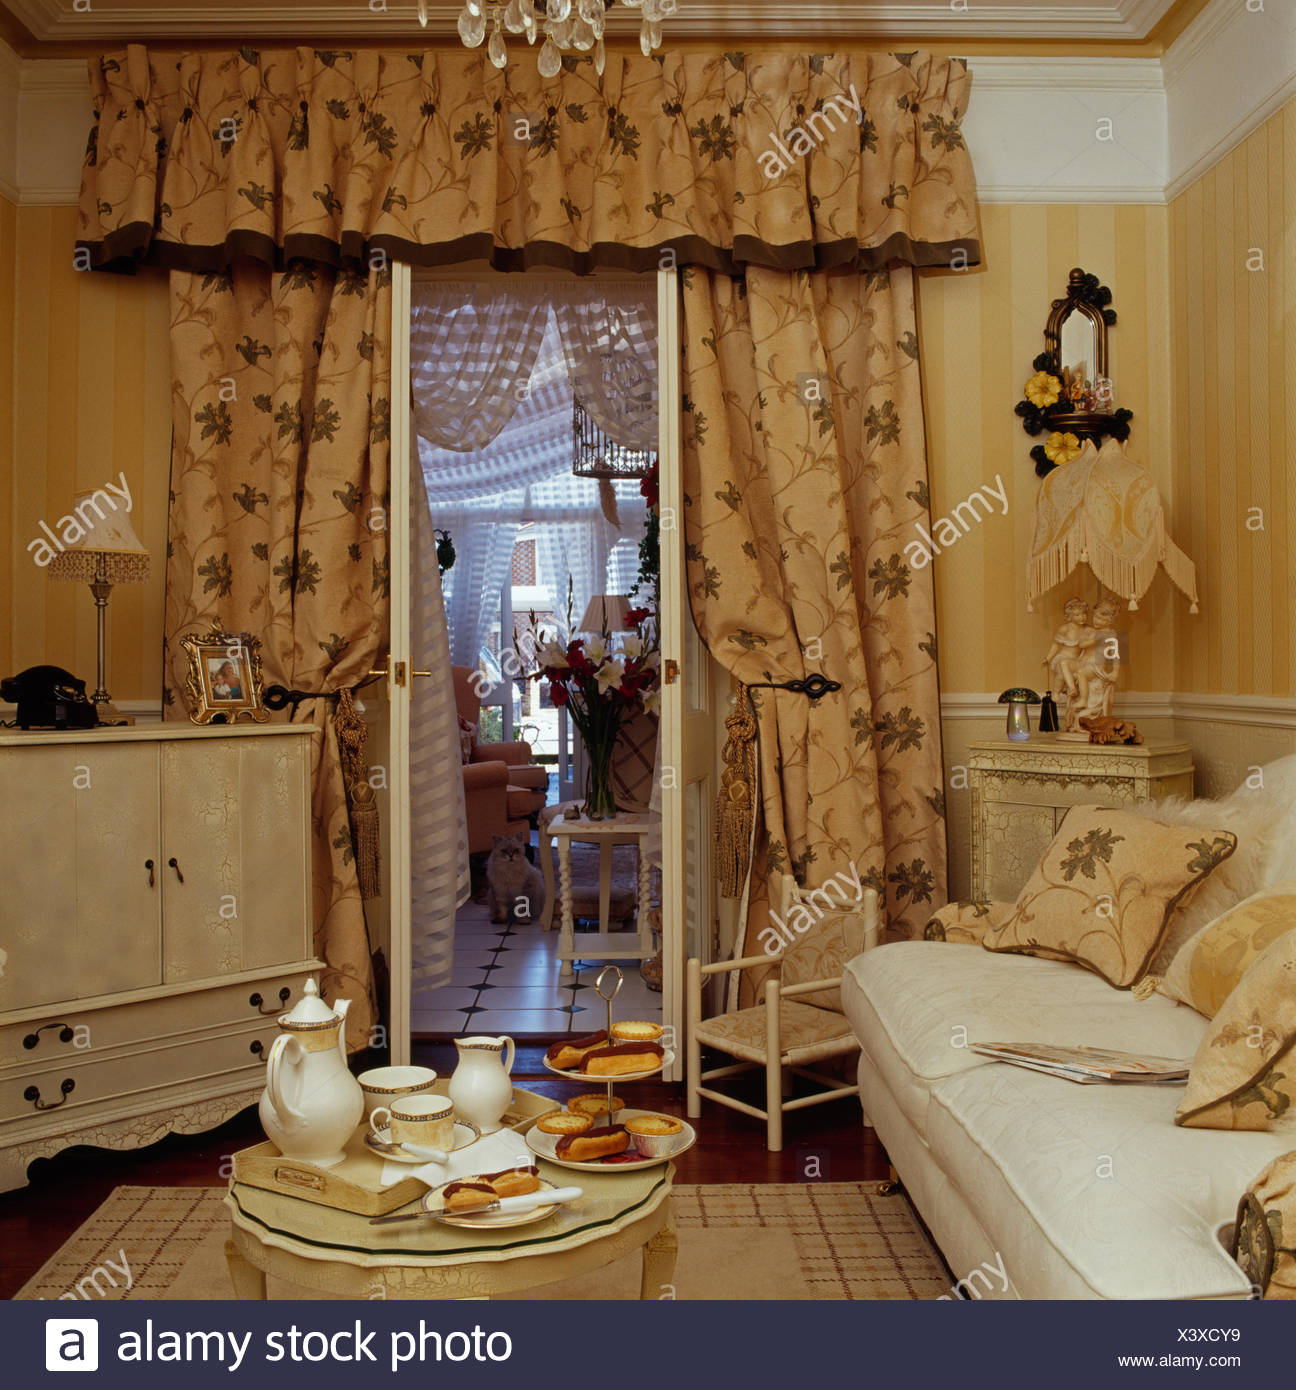 Tea Set On Tray In Small Living Room With Concealed Television And Patterned Curtains At Open French Windows To Conservatory Stock Photo Alamy